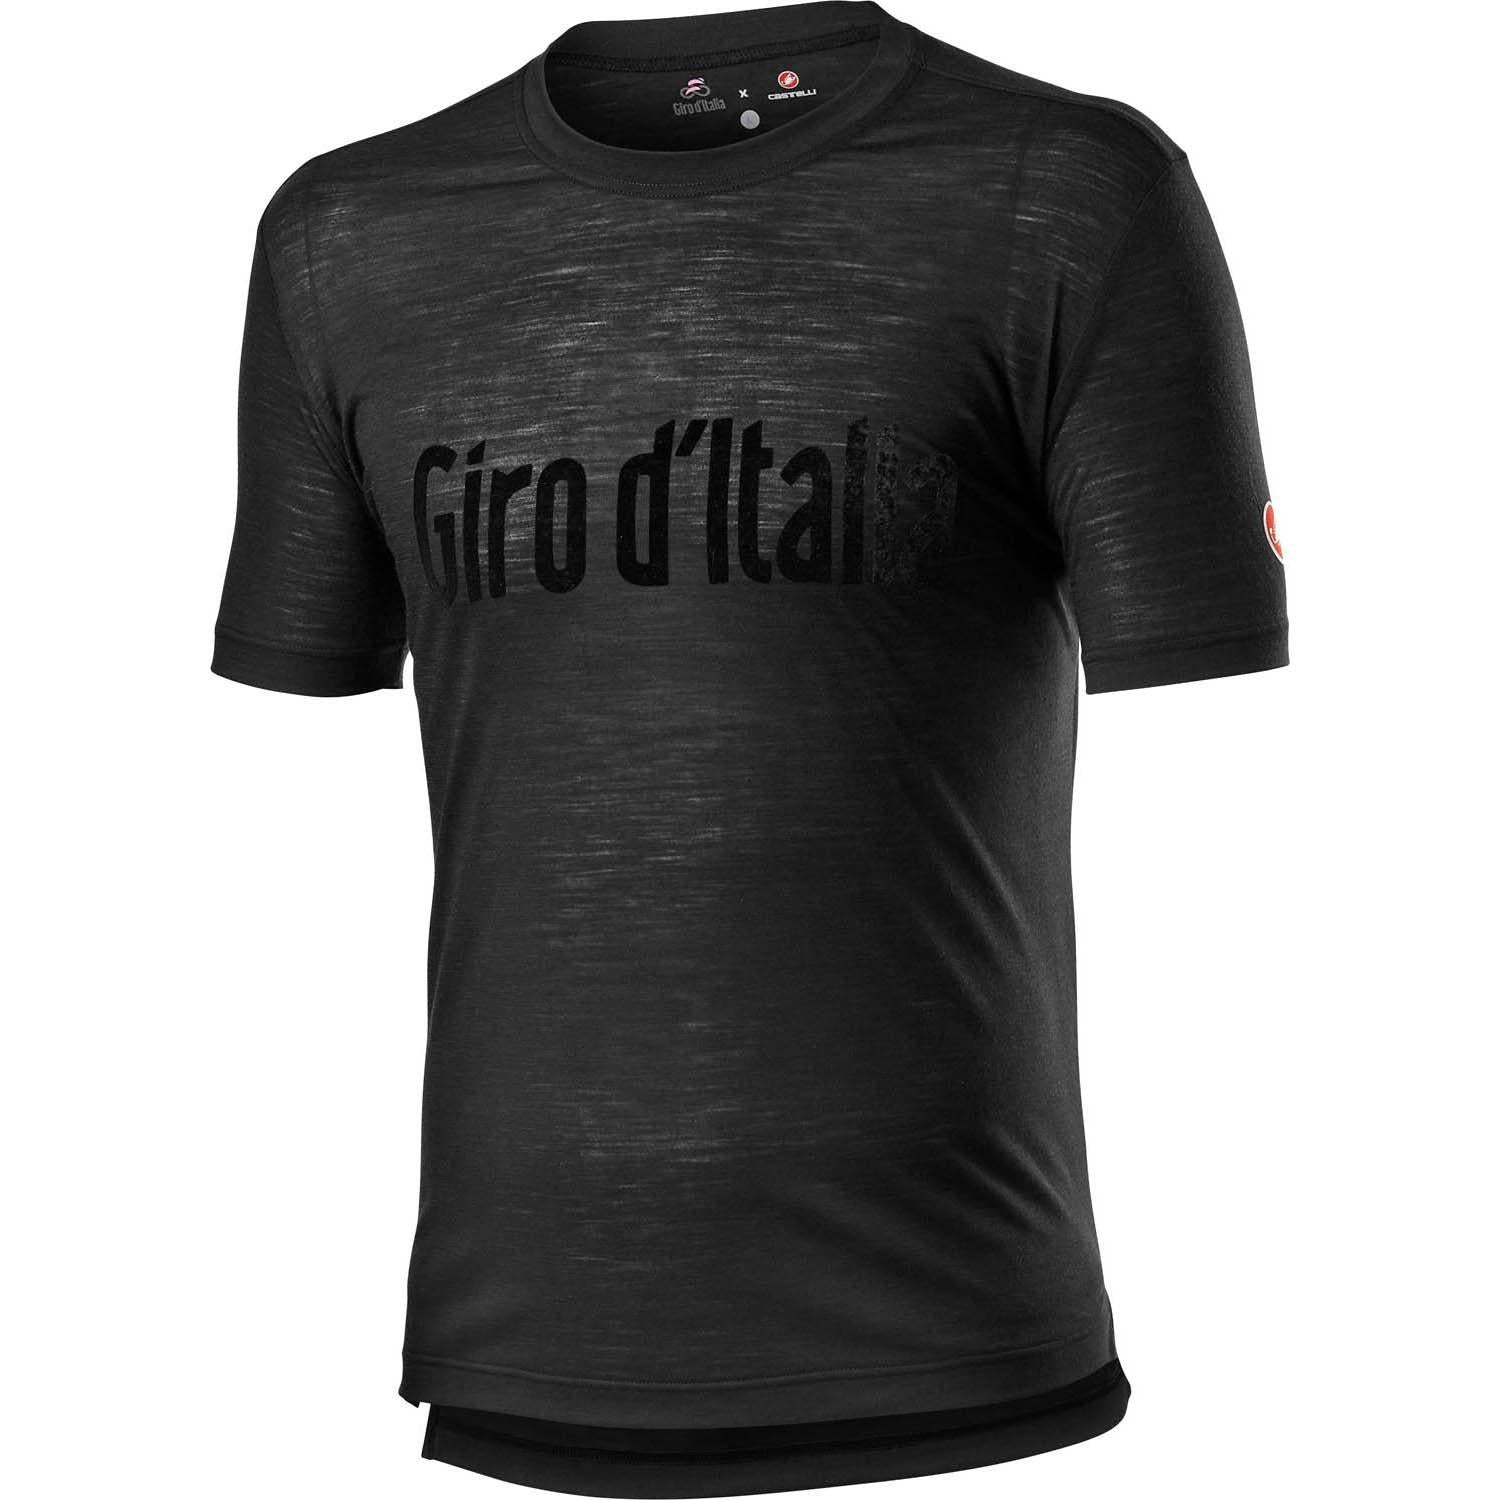 Castelli-Castelli Giro Heritage Tee-Nero Vintage-S-CS95103140852-saddleback-elite-performance-cycling